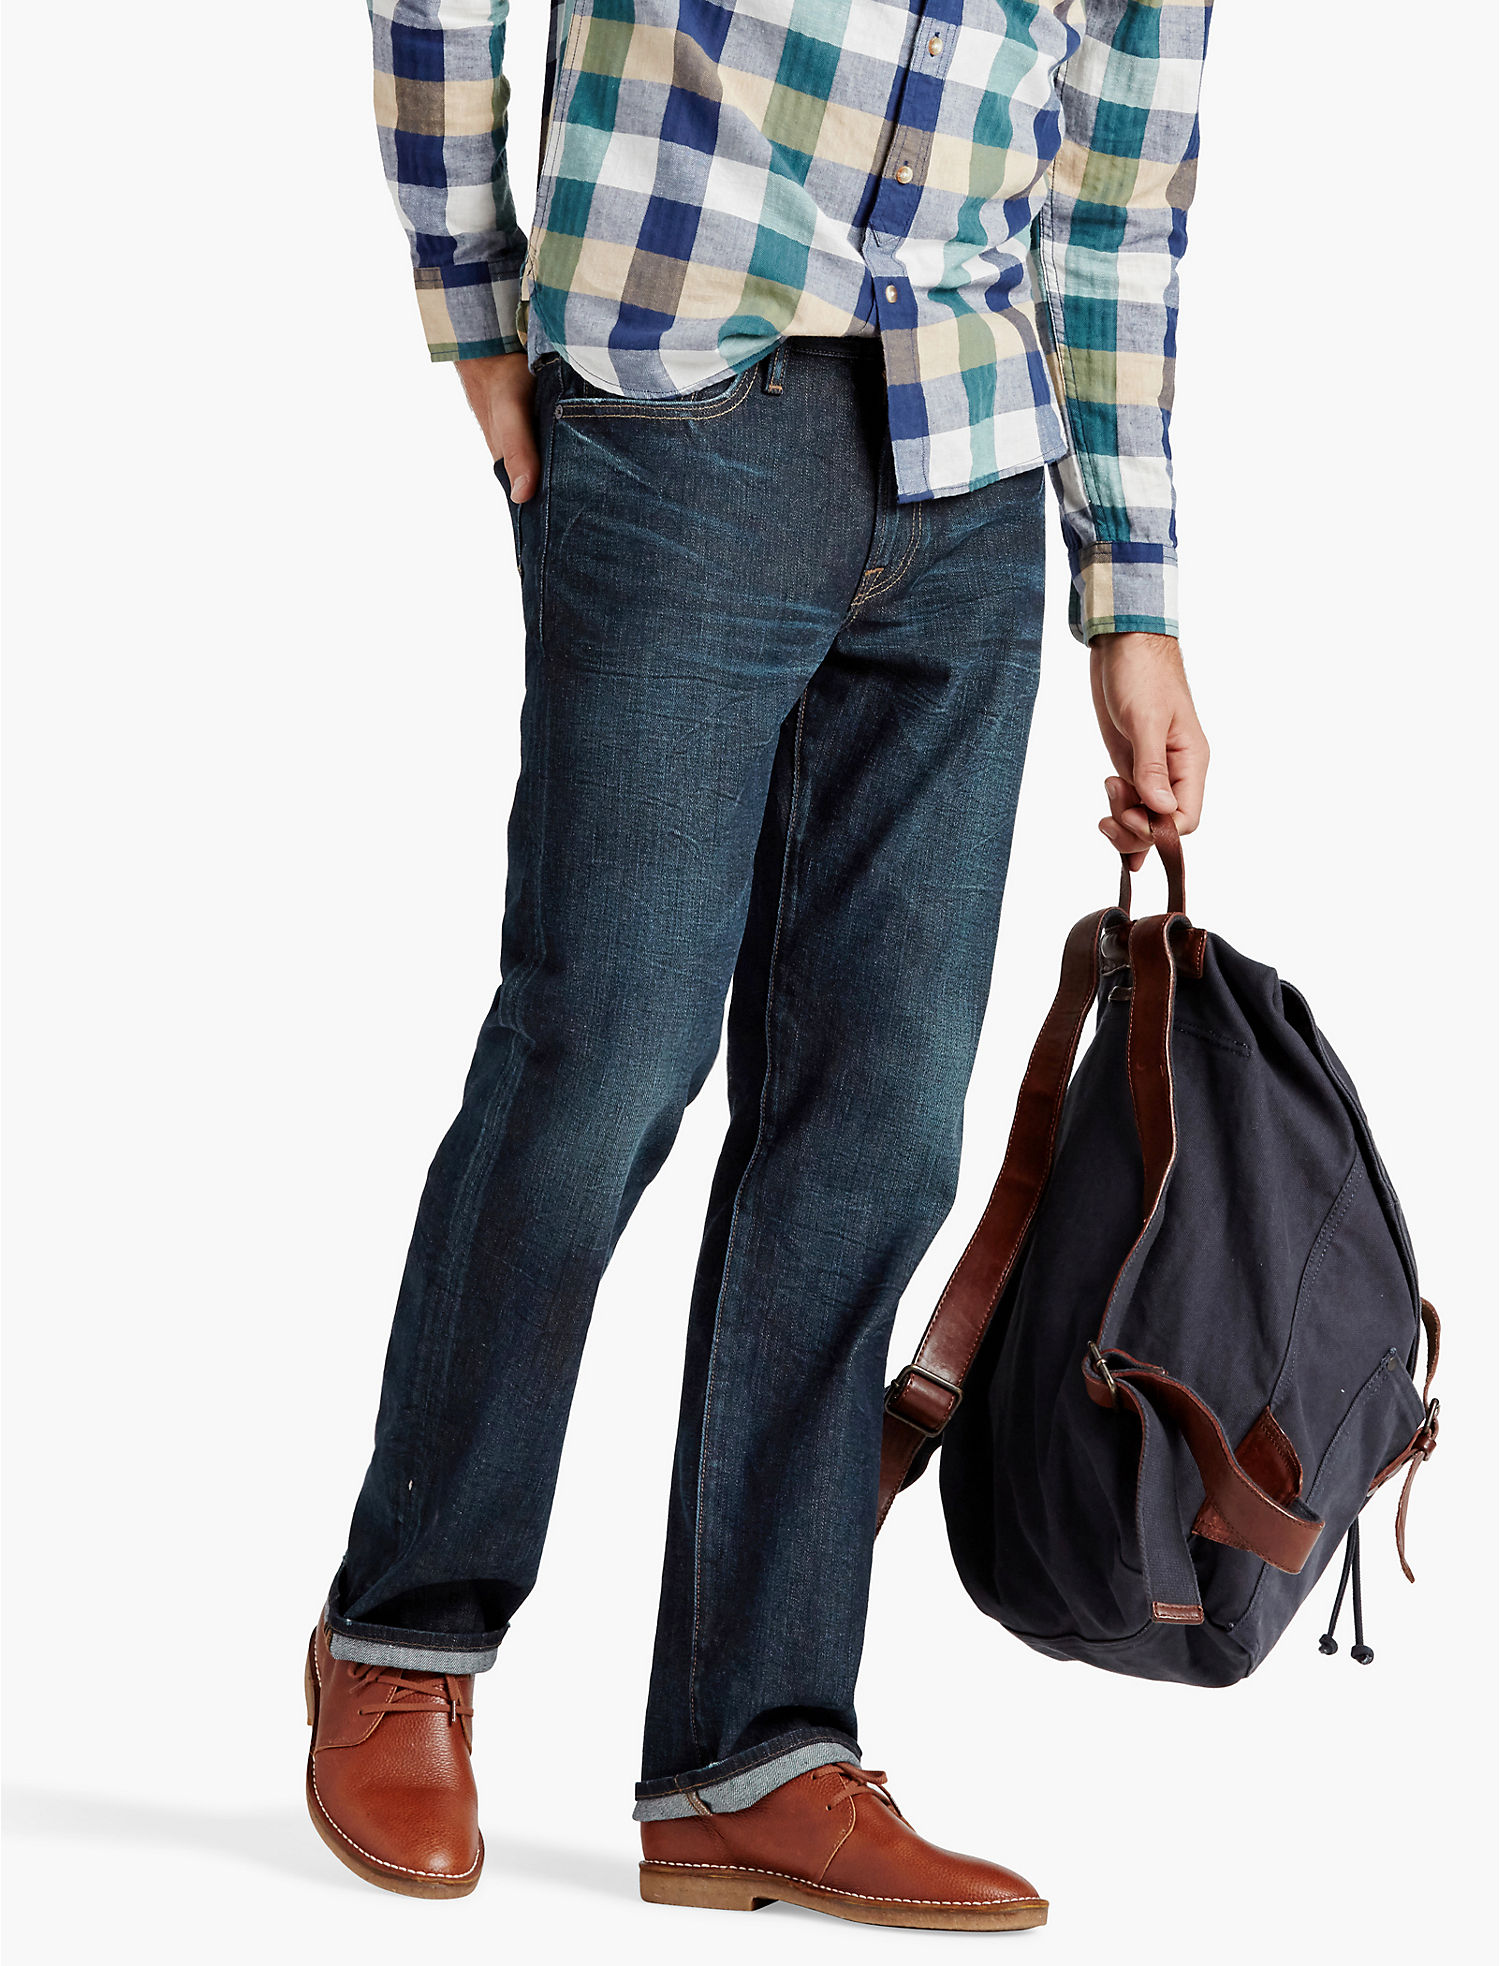 Discount Jeans For Men | Extra 40% Off Sale Styles | Lucky Brand